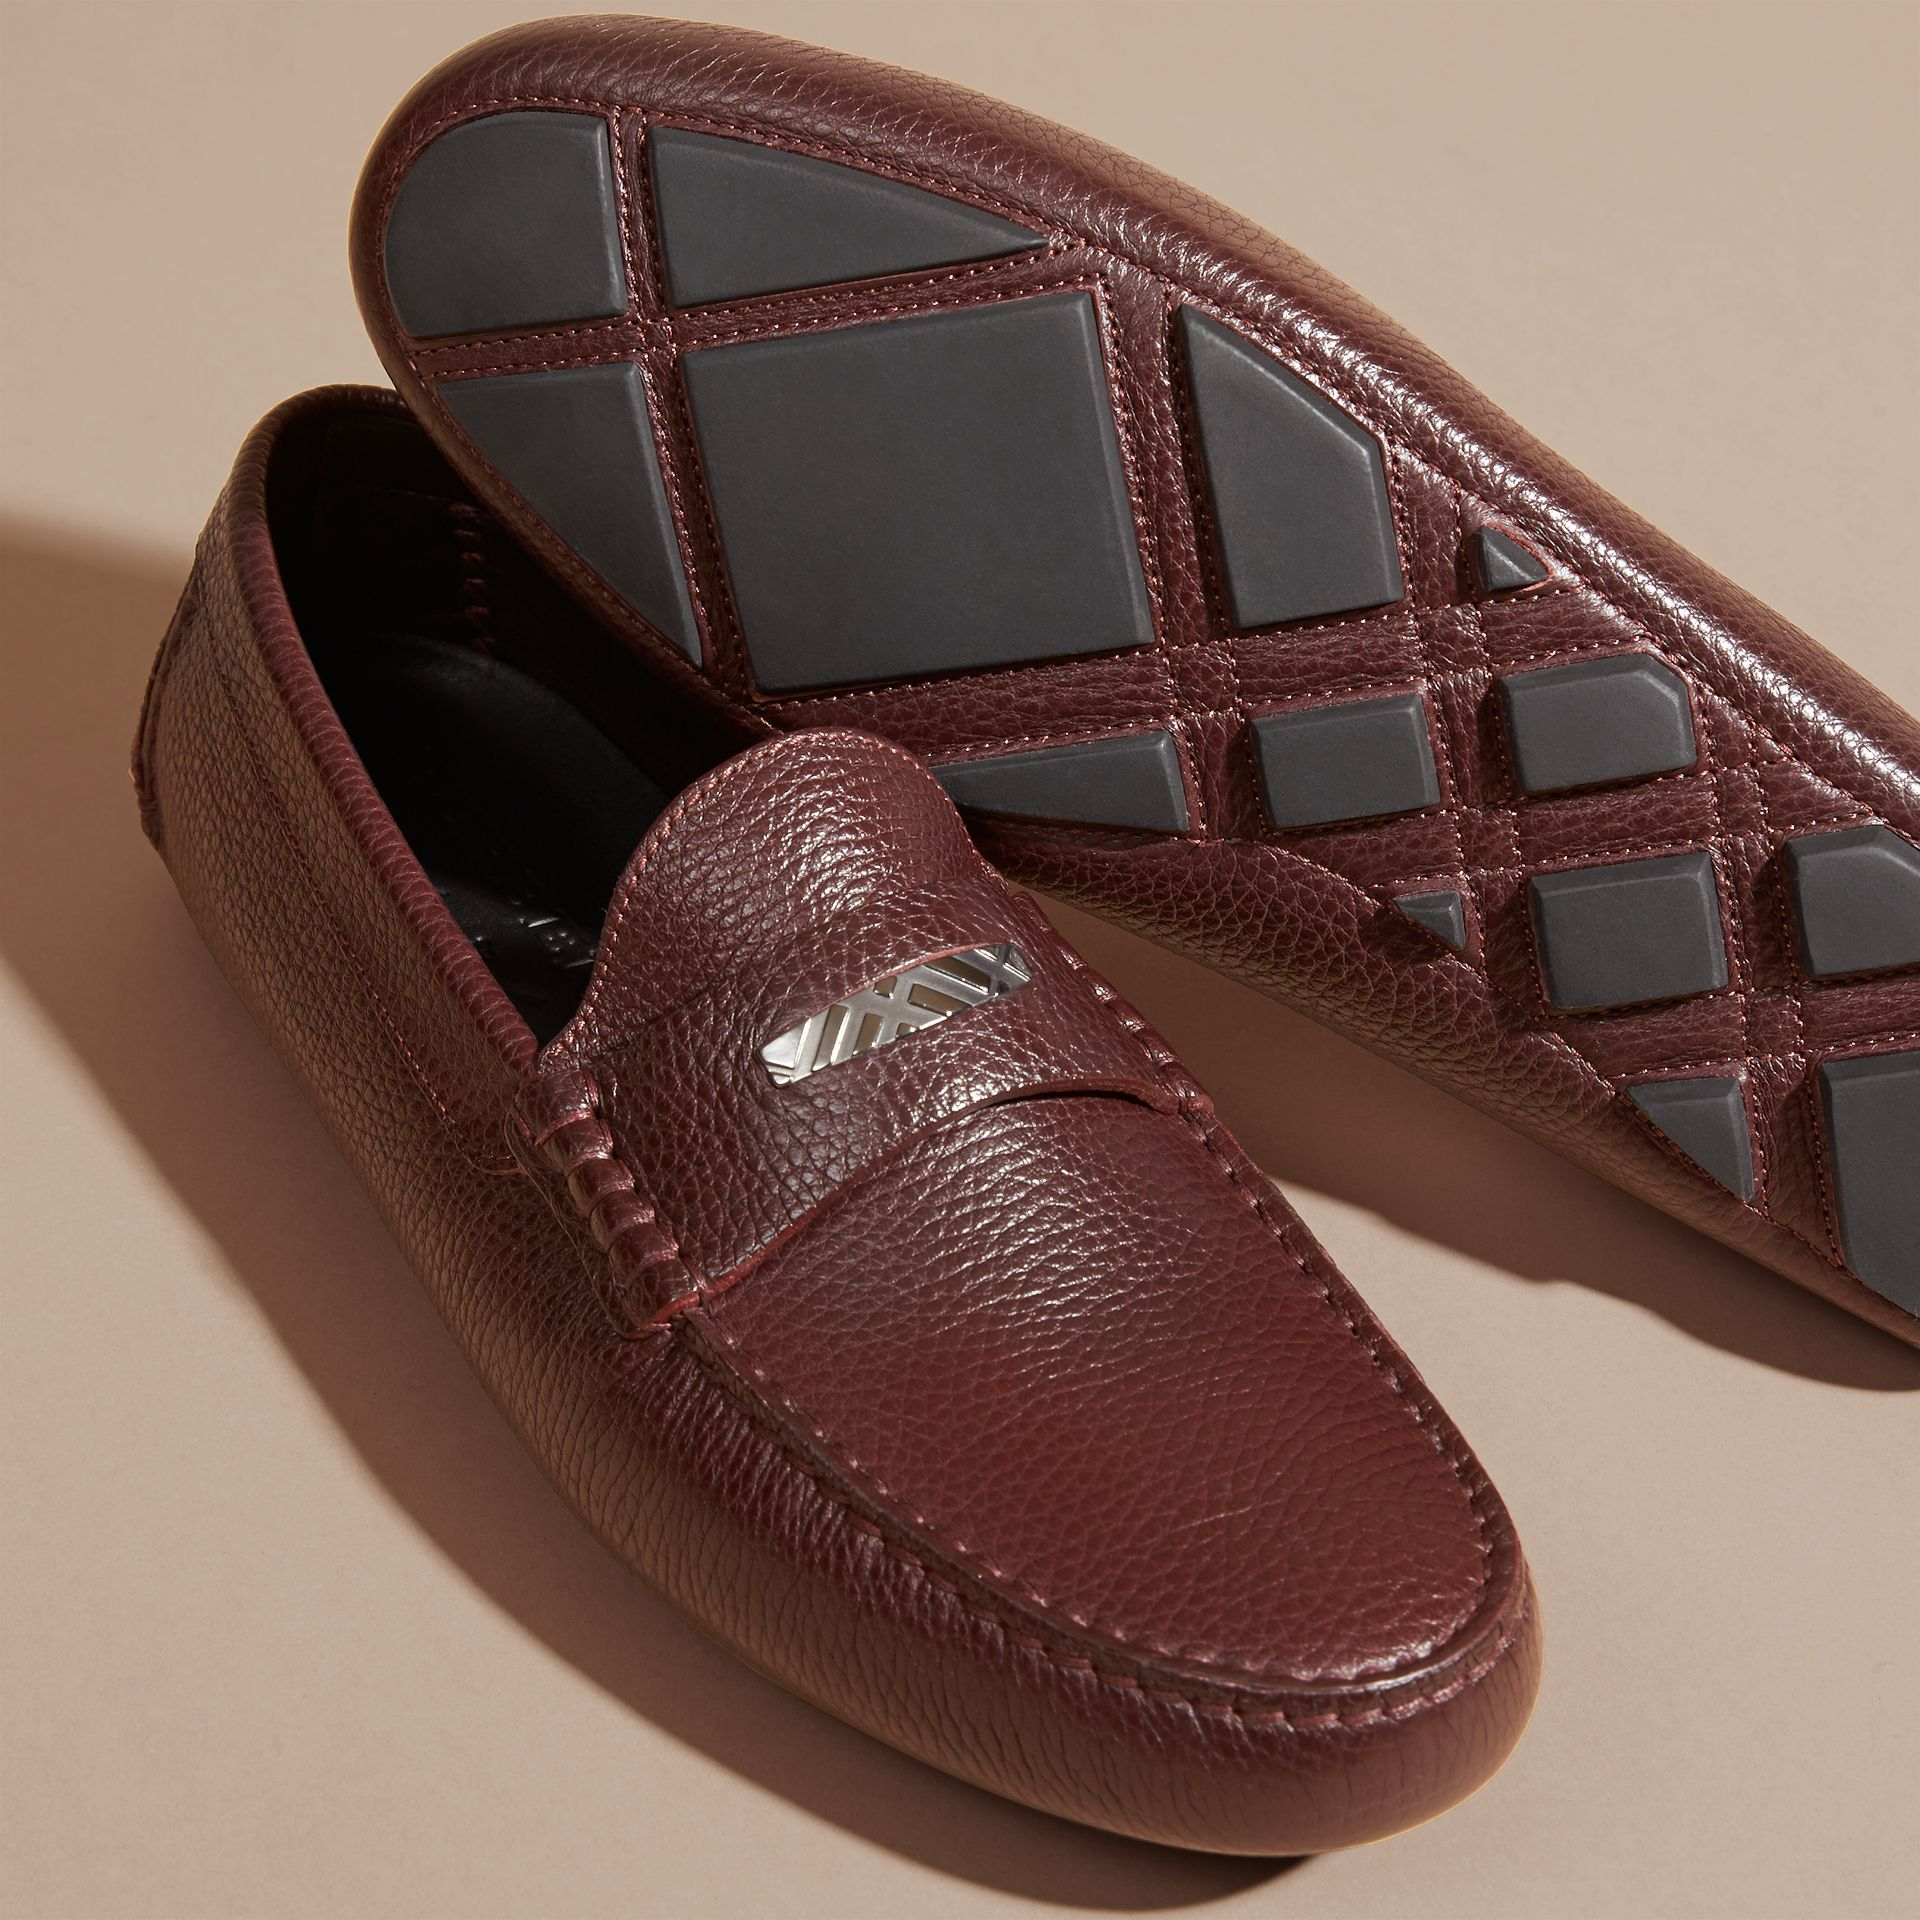 Bordeaux Grainy Leather Loafers with Engraved Check Detail Bordeaux - gallery image 5